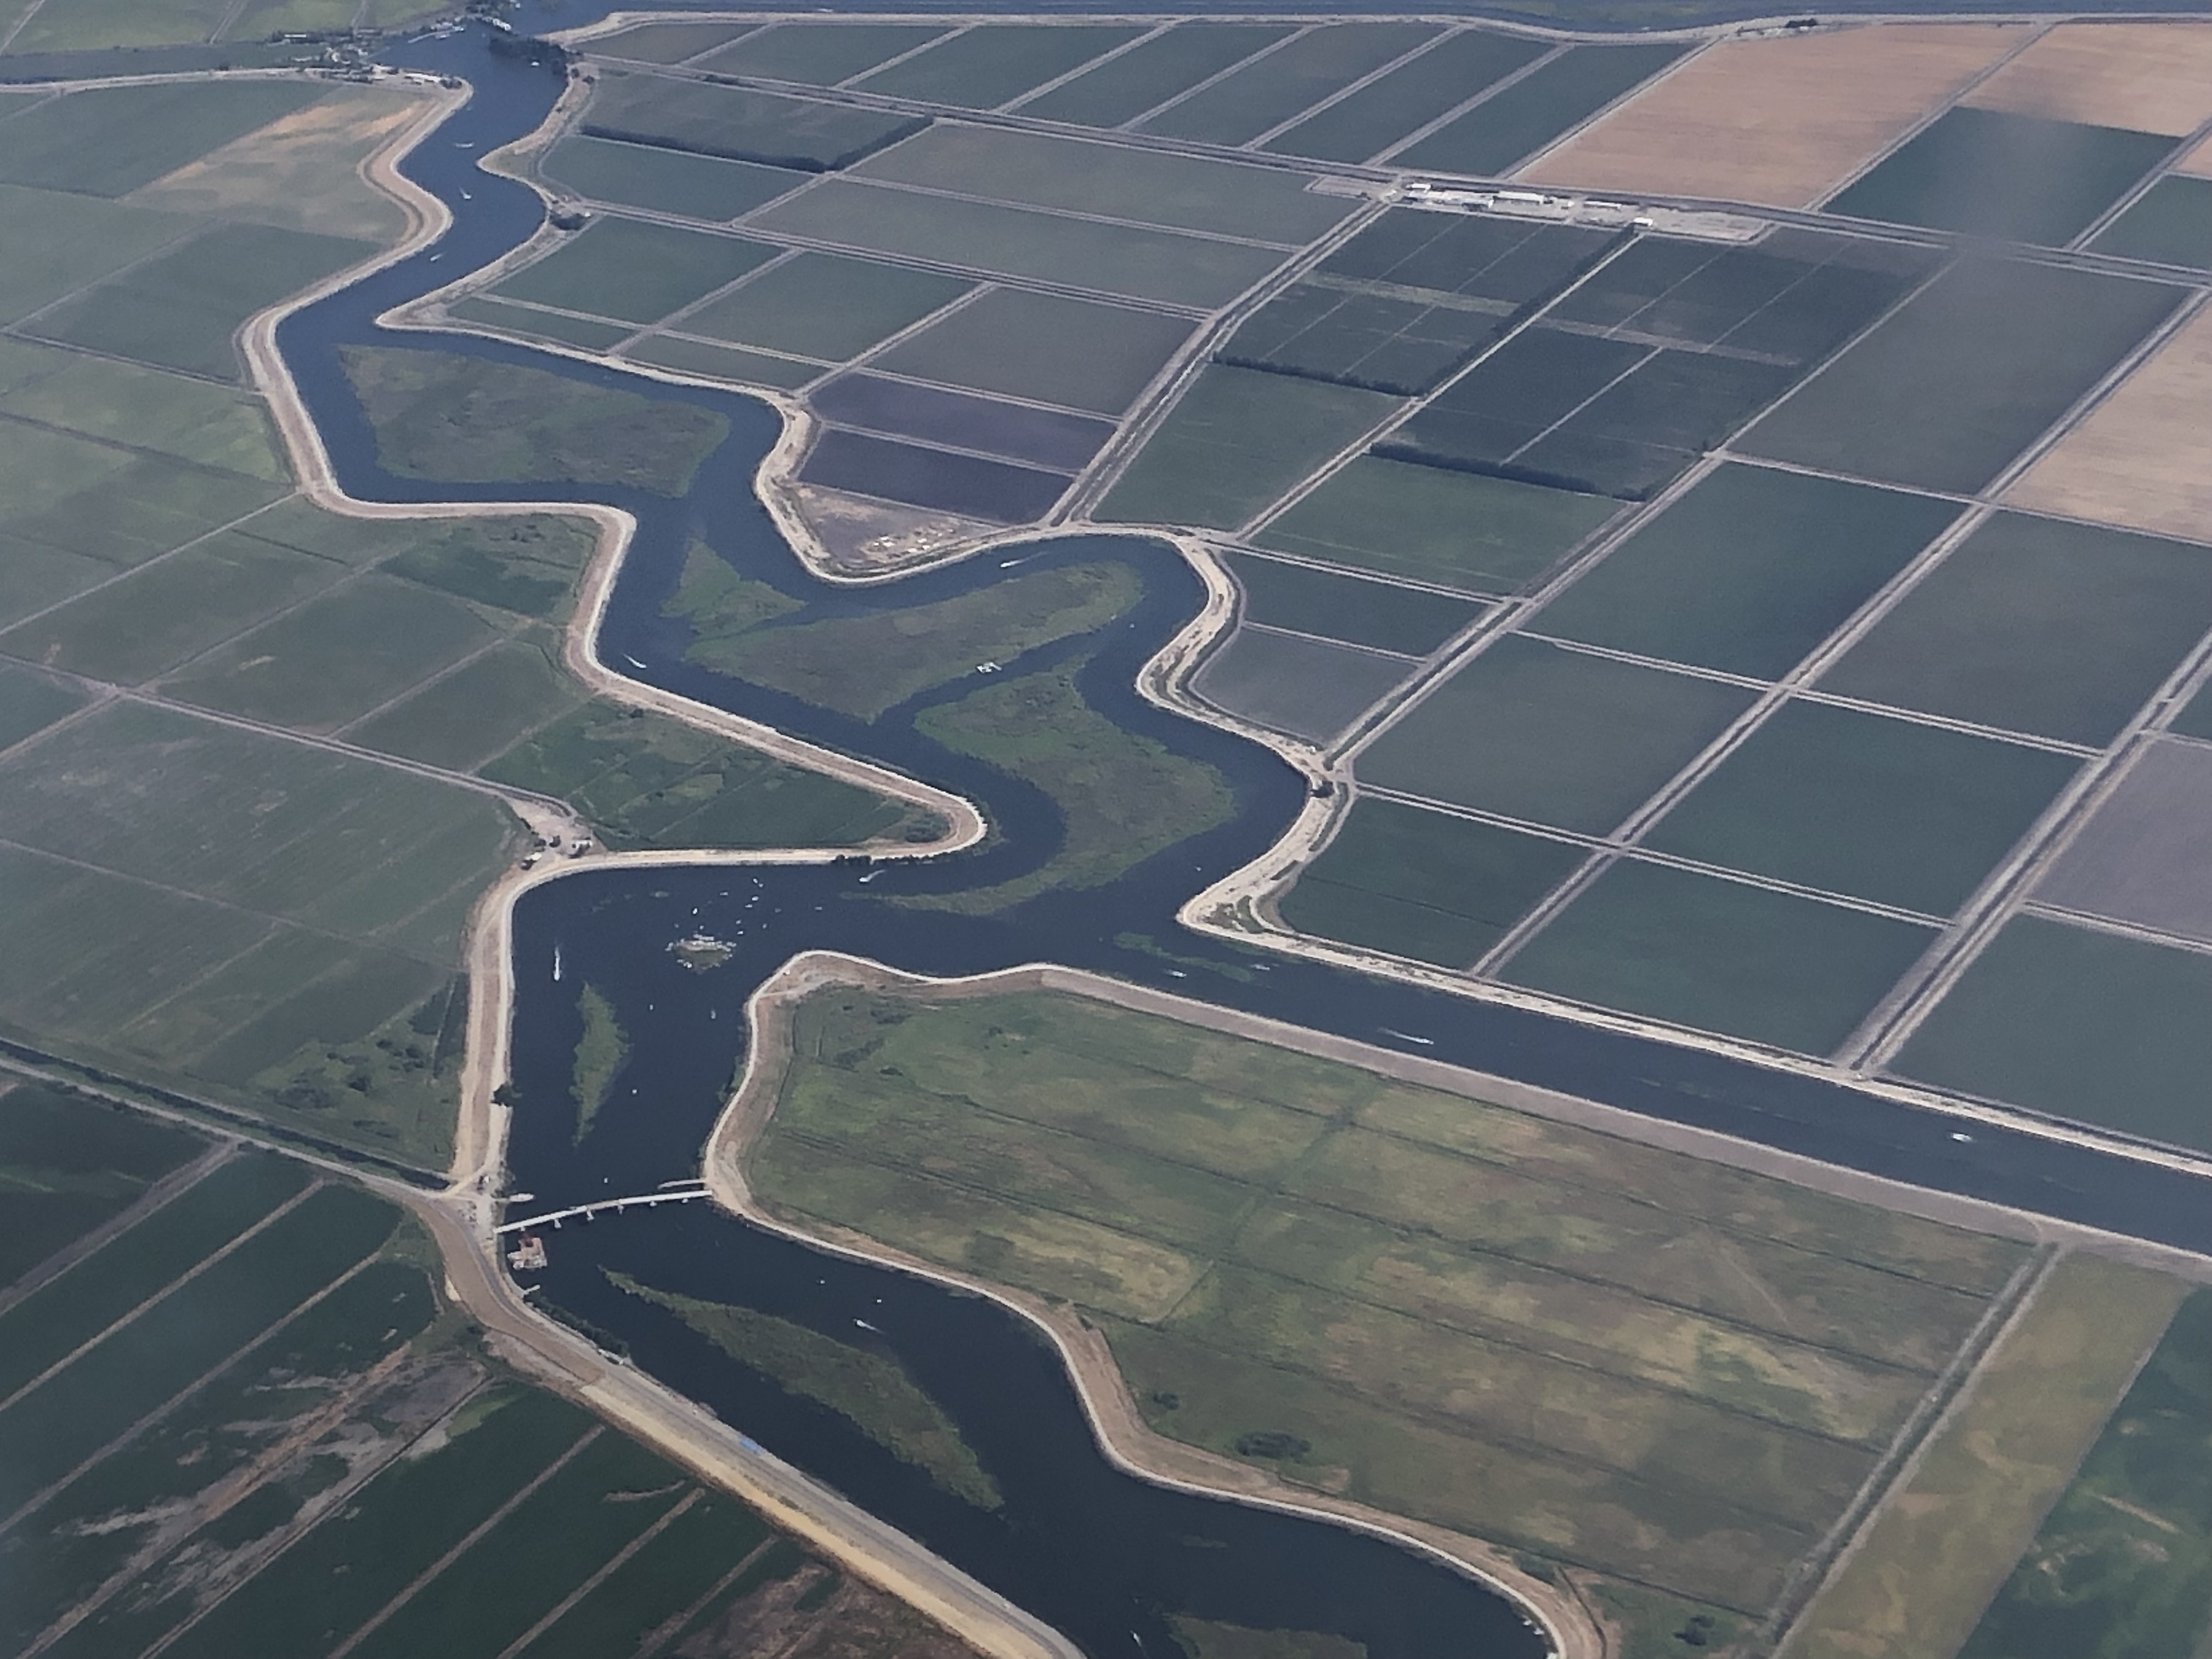 Farmland in California's Central Valley